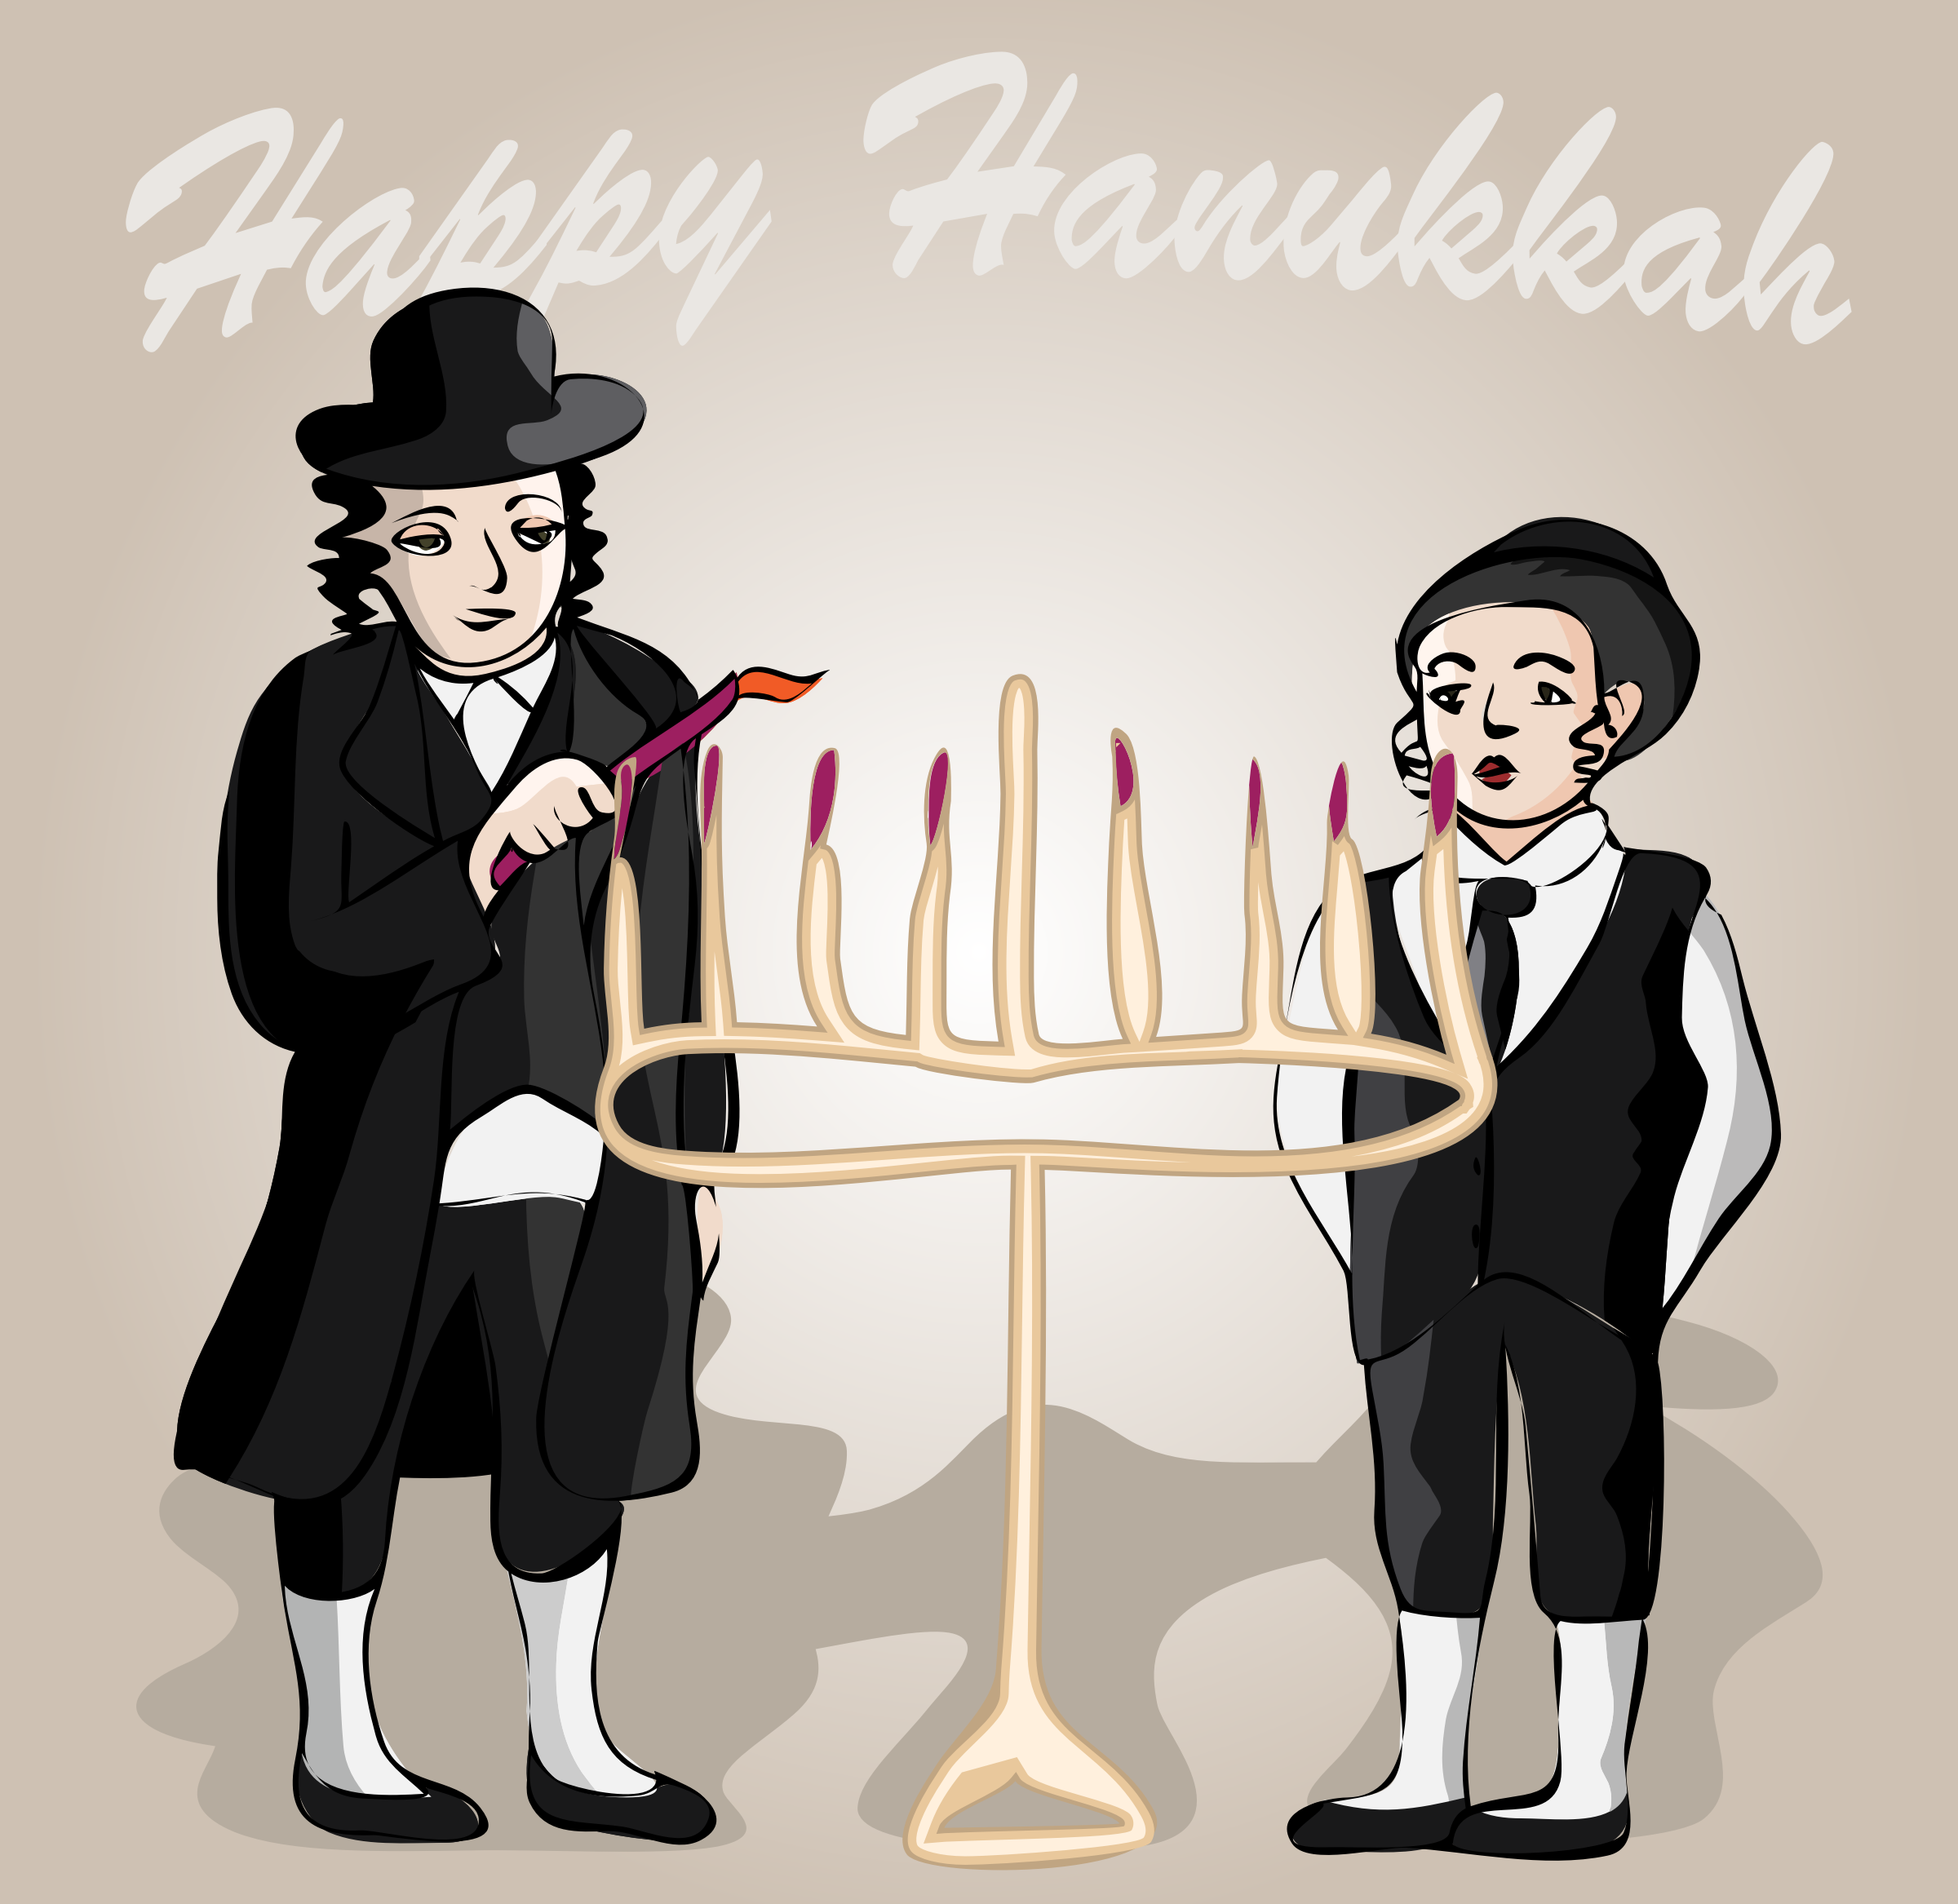 Happy Hanukkah by OlKu